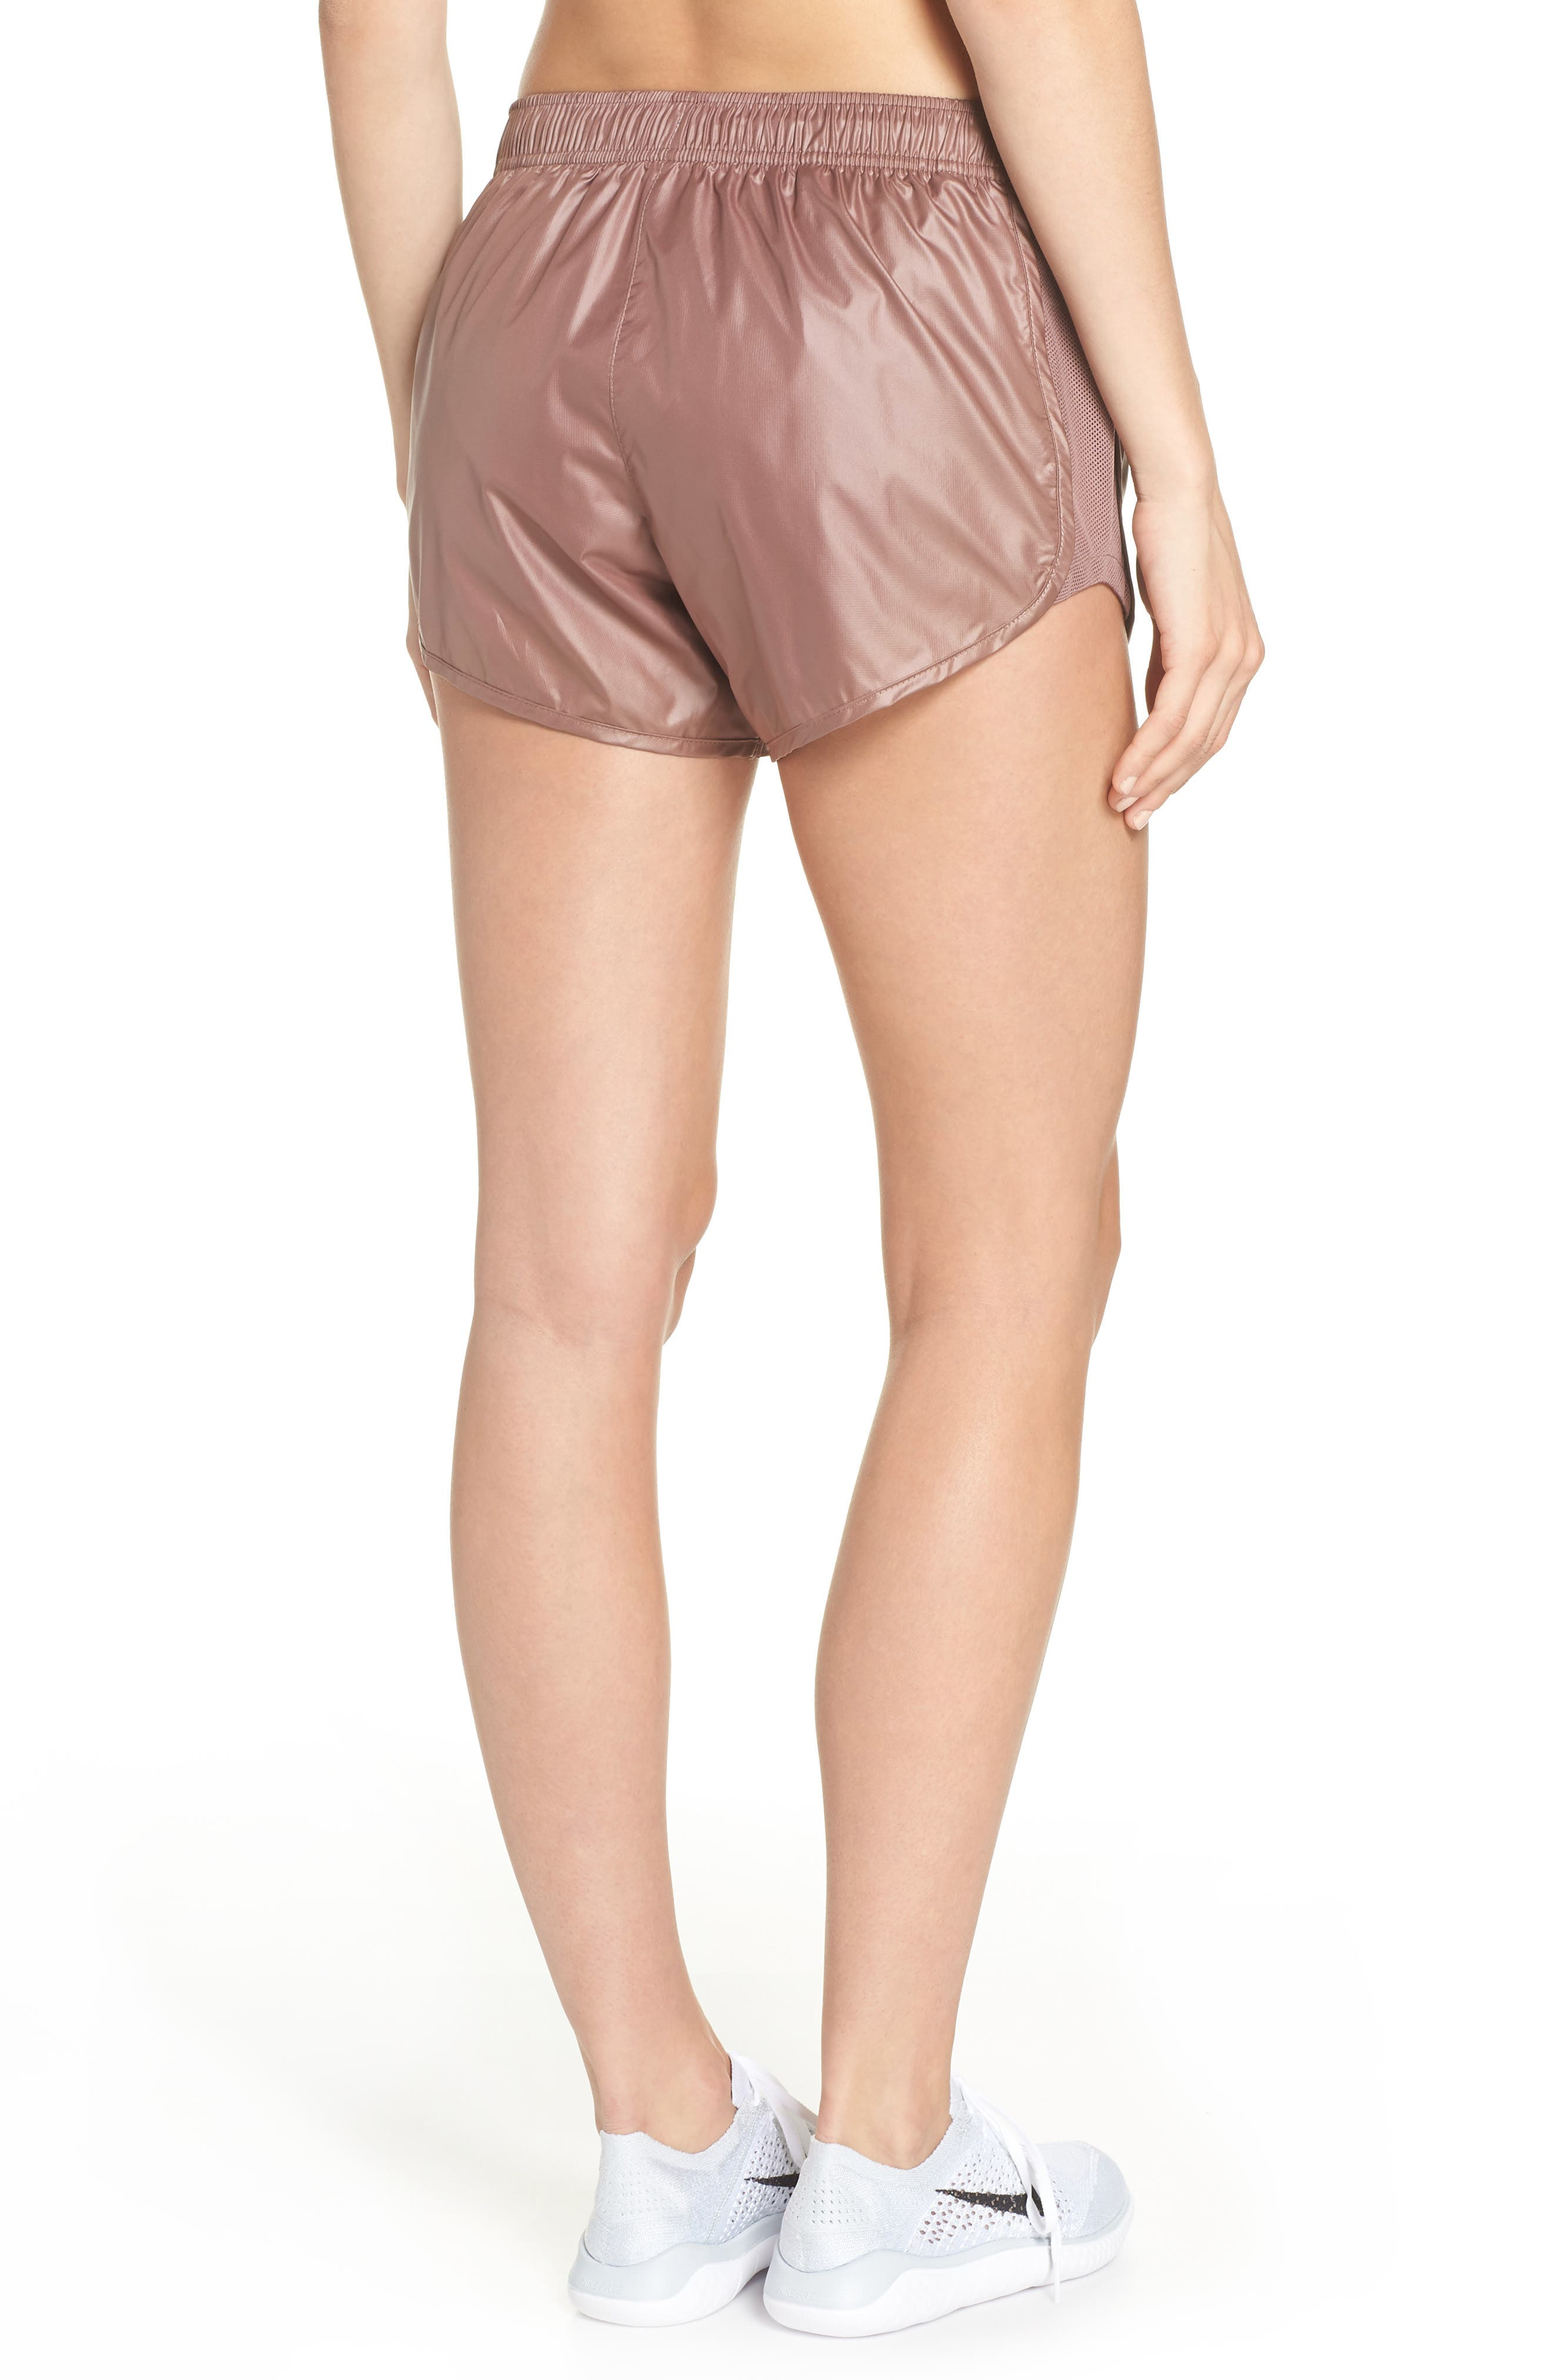 Tempo Running Shorts,                             Alternate thumbnail 2, color,                             SMOKEY MAUVE